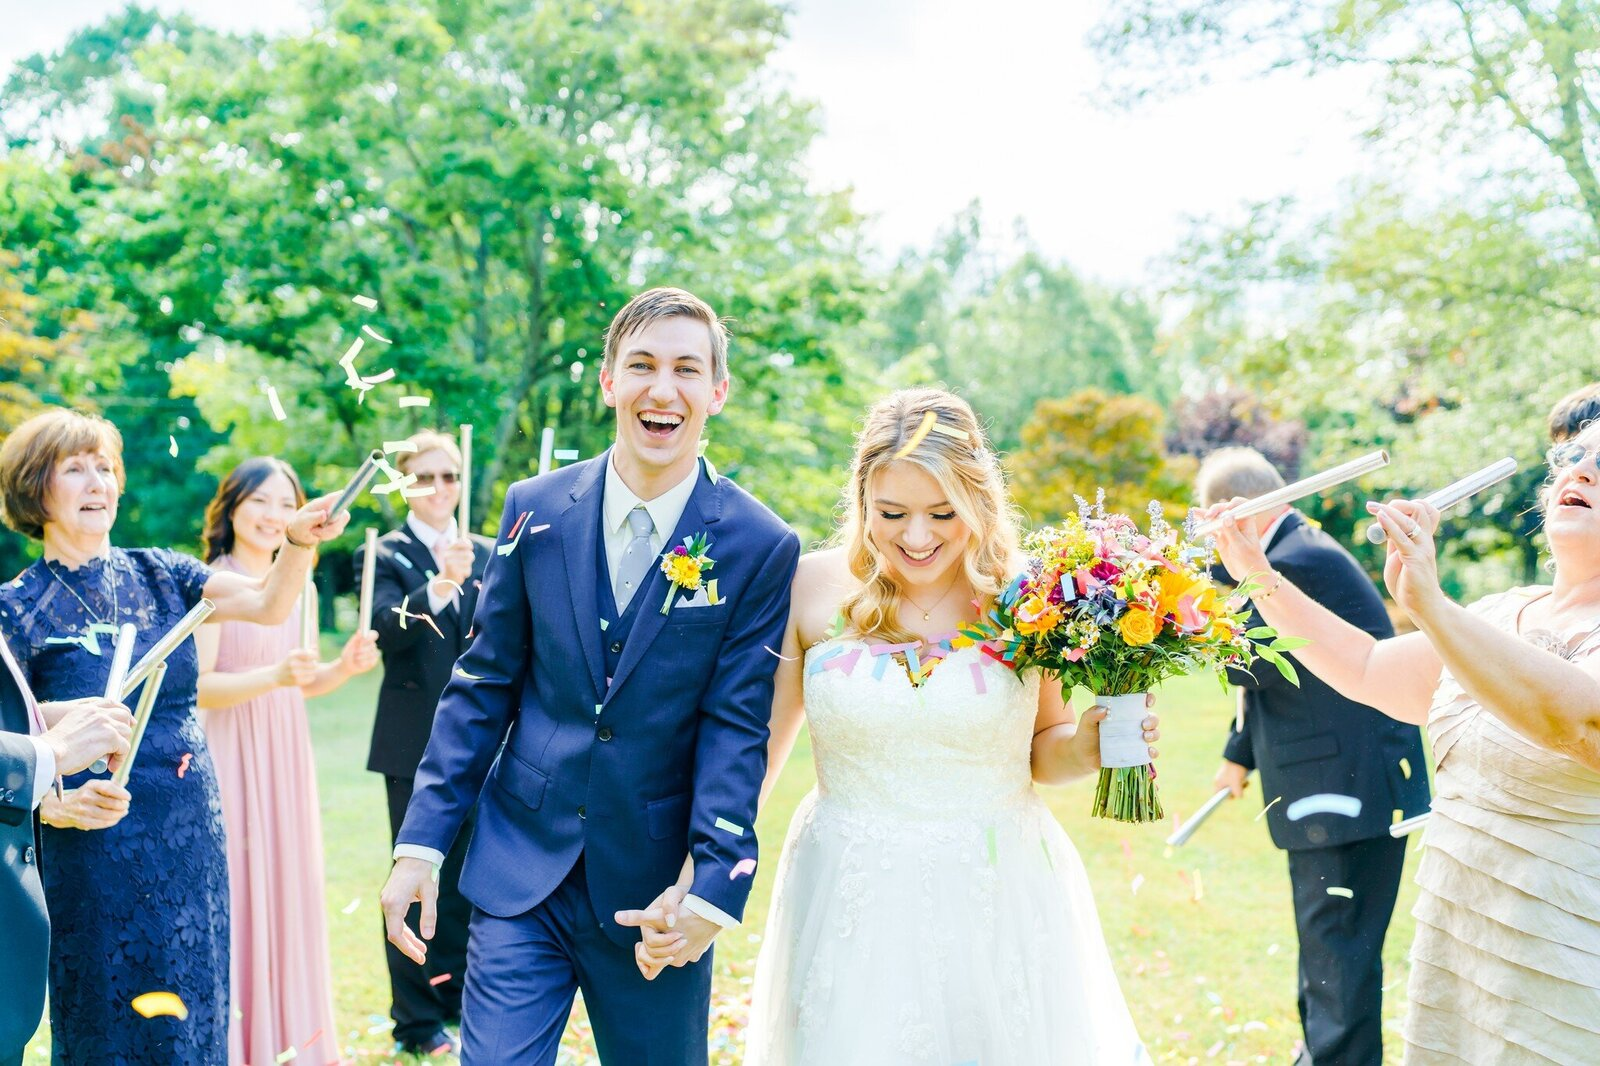 Bride and groom excitedly hold hands and walk down aisle of New Hampshire Wedding